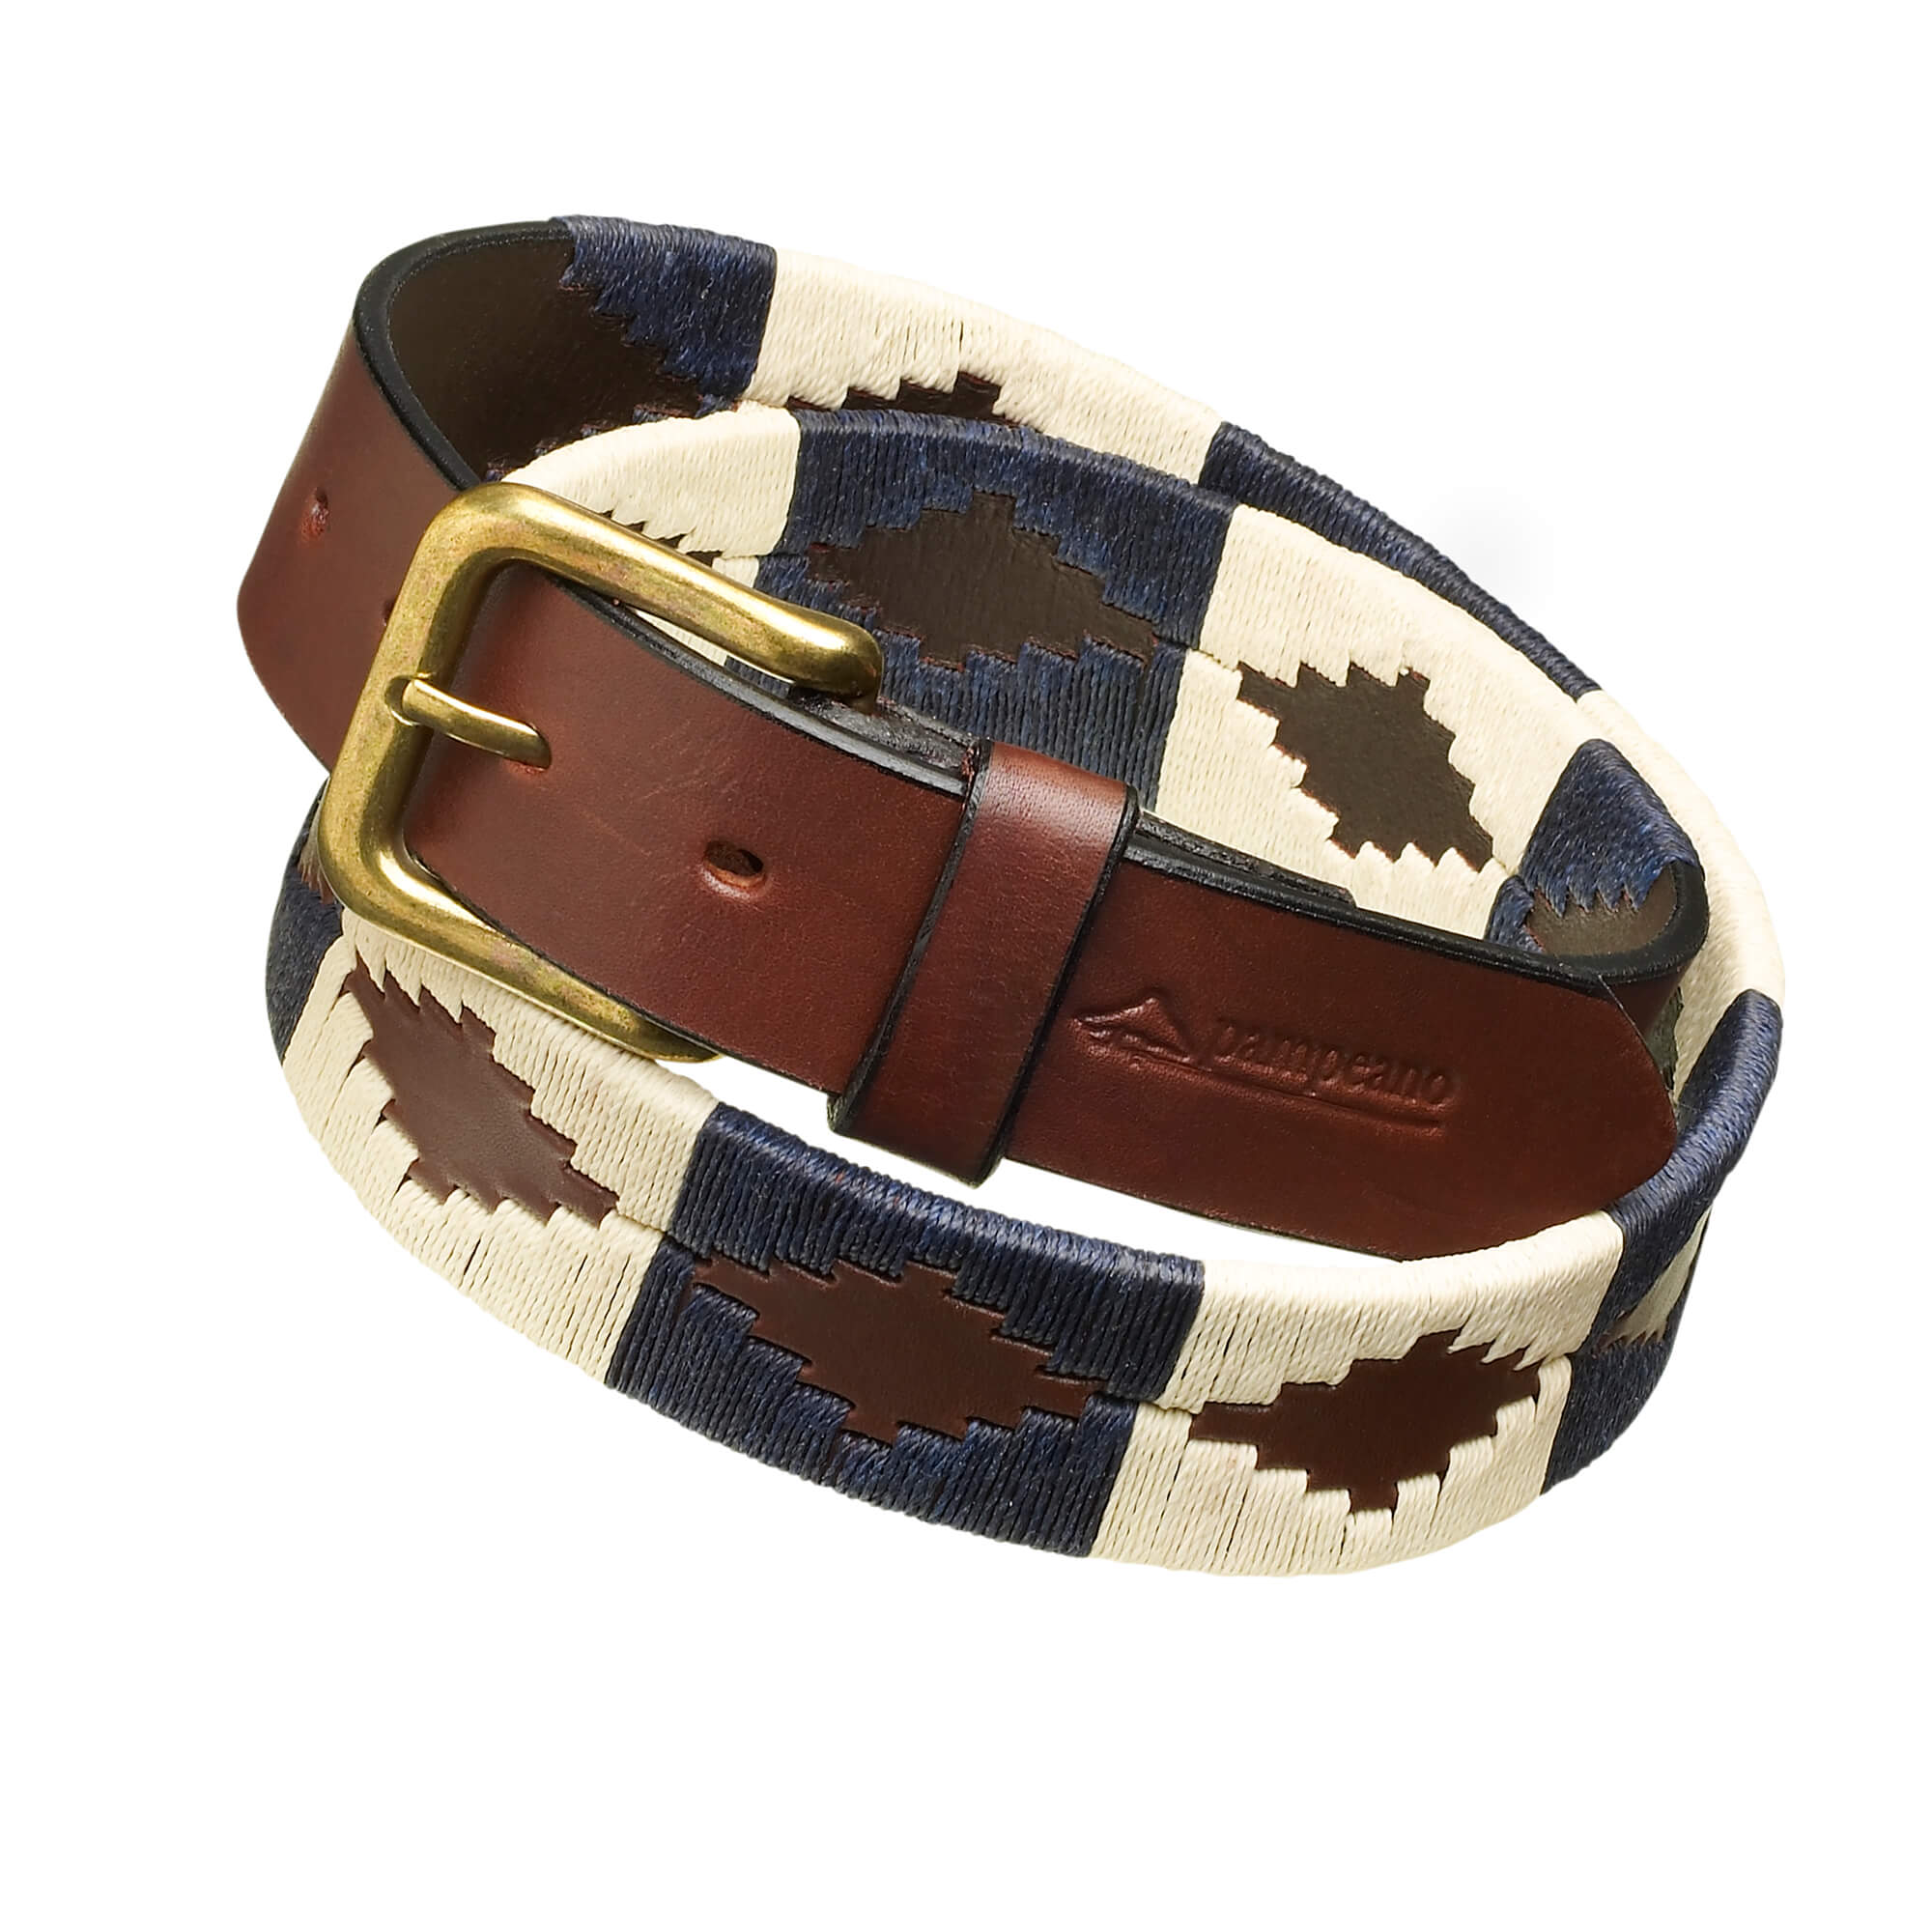 leather polo belts navy cream jugadoro